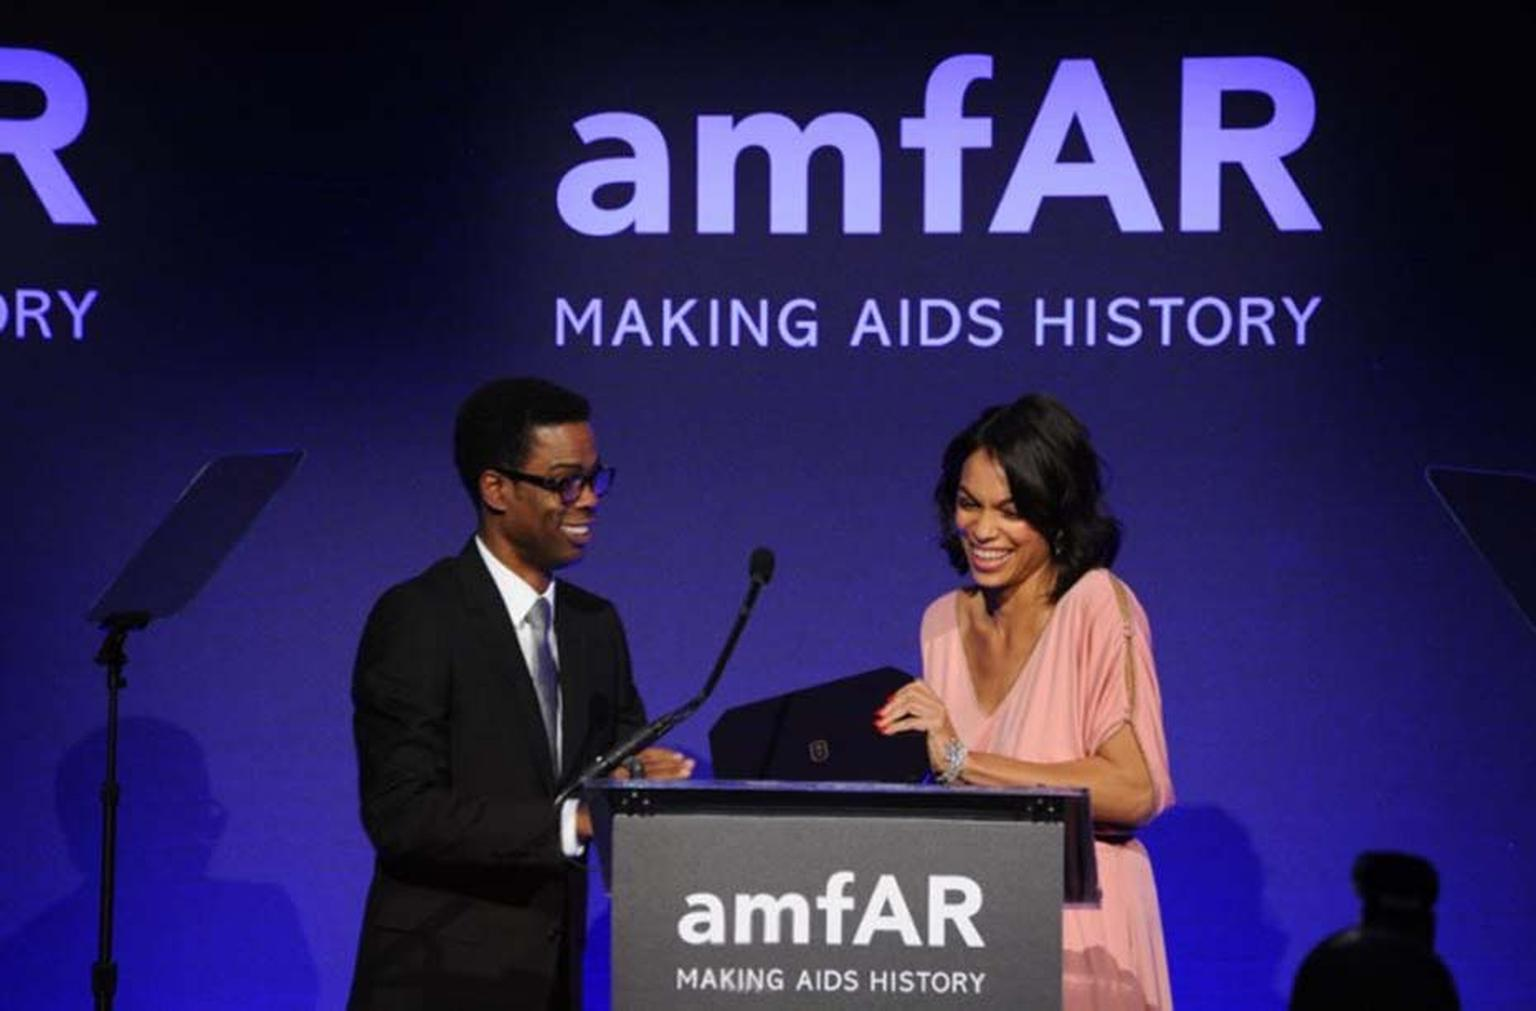 AmfAR honouree and actress Rosario Dawson, who was wearing a selection of sponsor Harry Winston's high jewellery diamond pieces, was presented with a Harry Winston Midnight Timepiece for her outstanding contribution to raising awareness for HIV/AIDS.